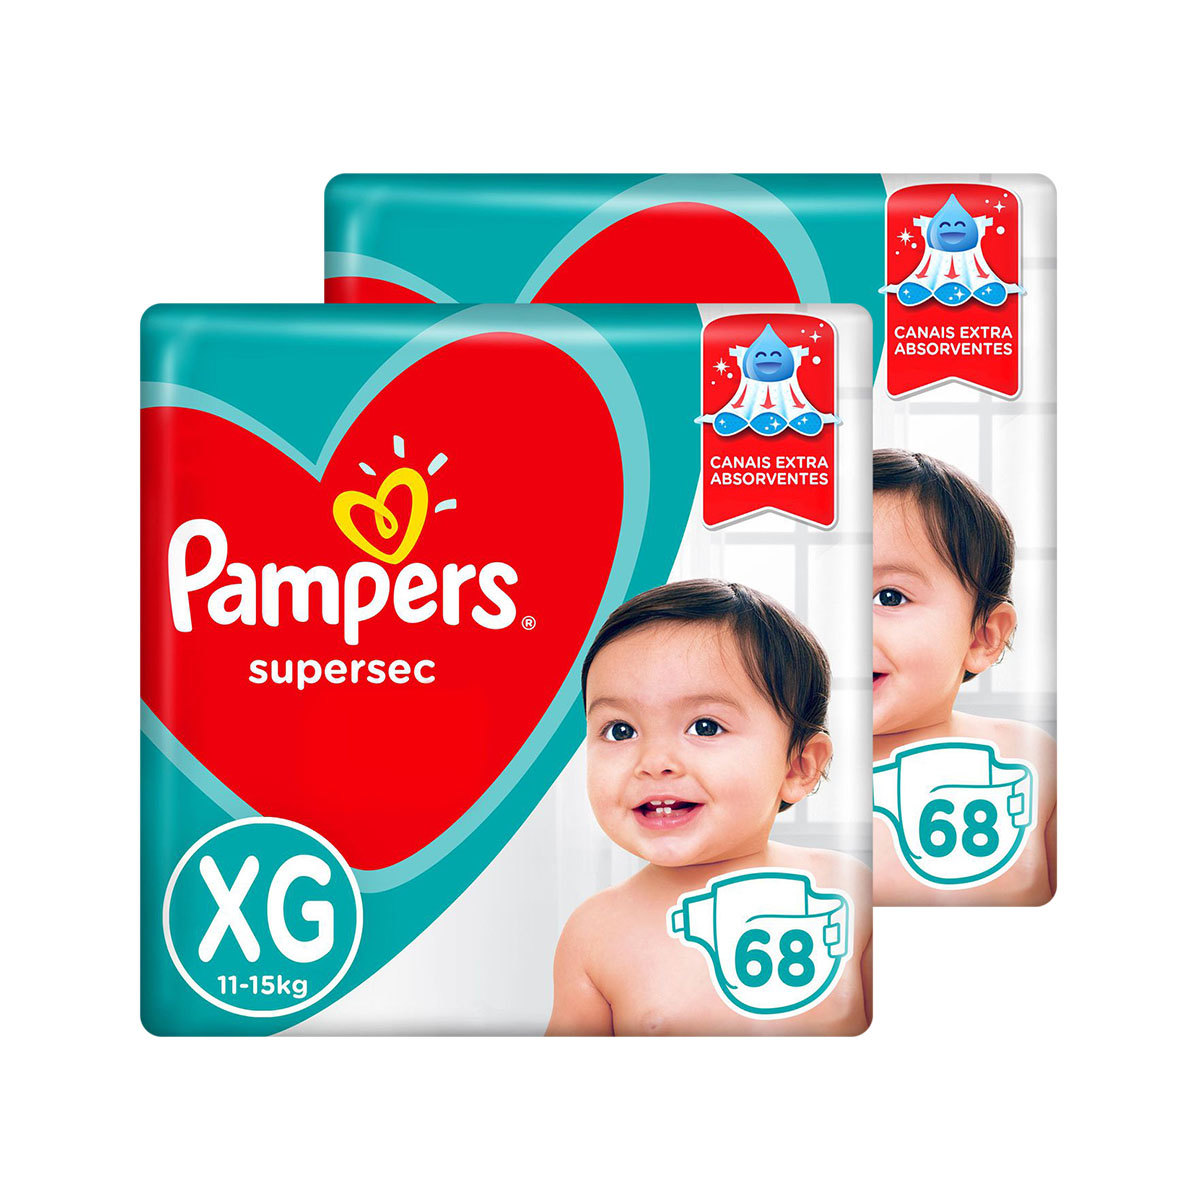 Kit De Fraldas Pampers Xg Supersec Jumbo 136 Unidades